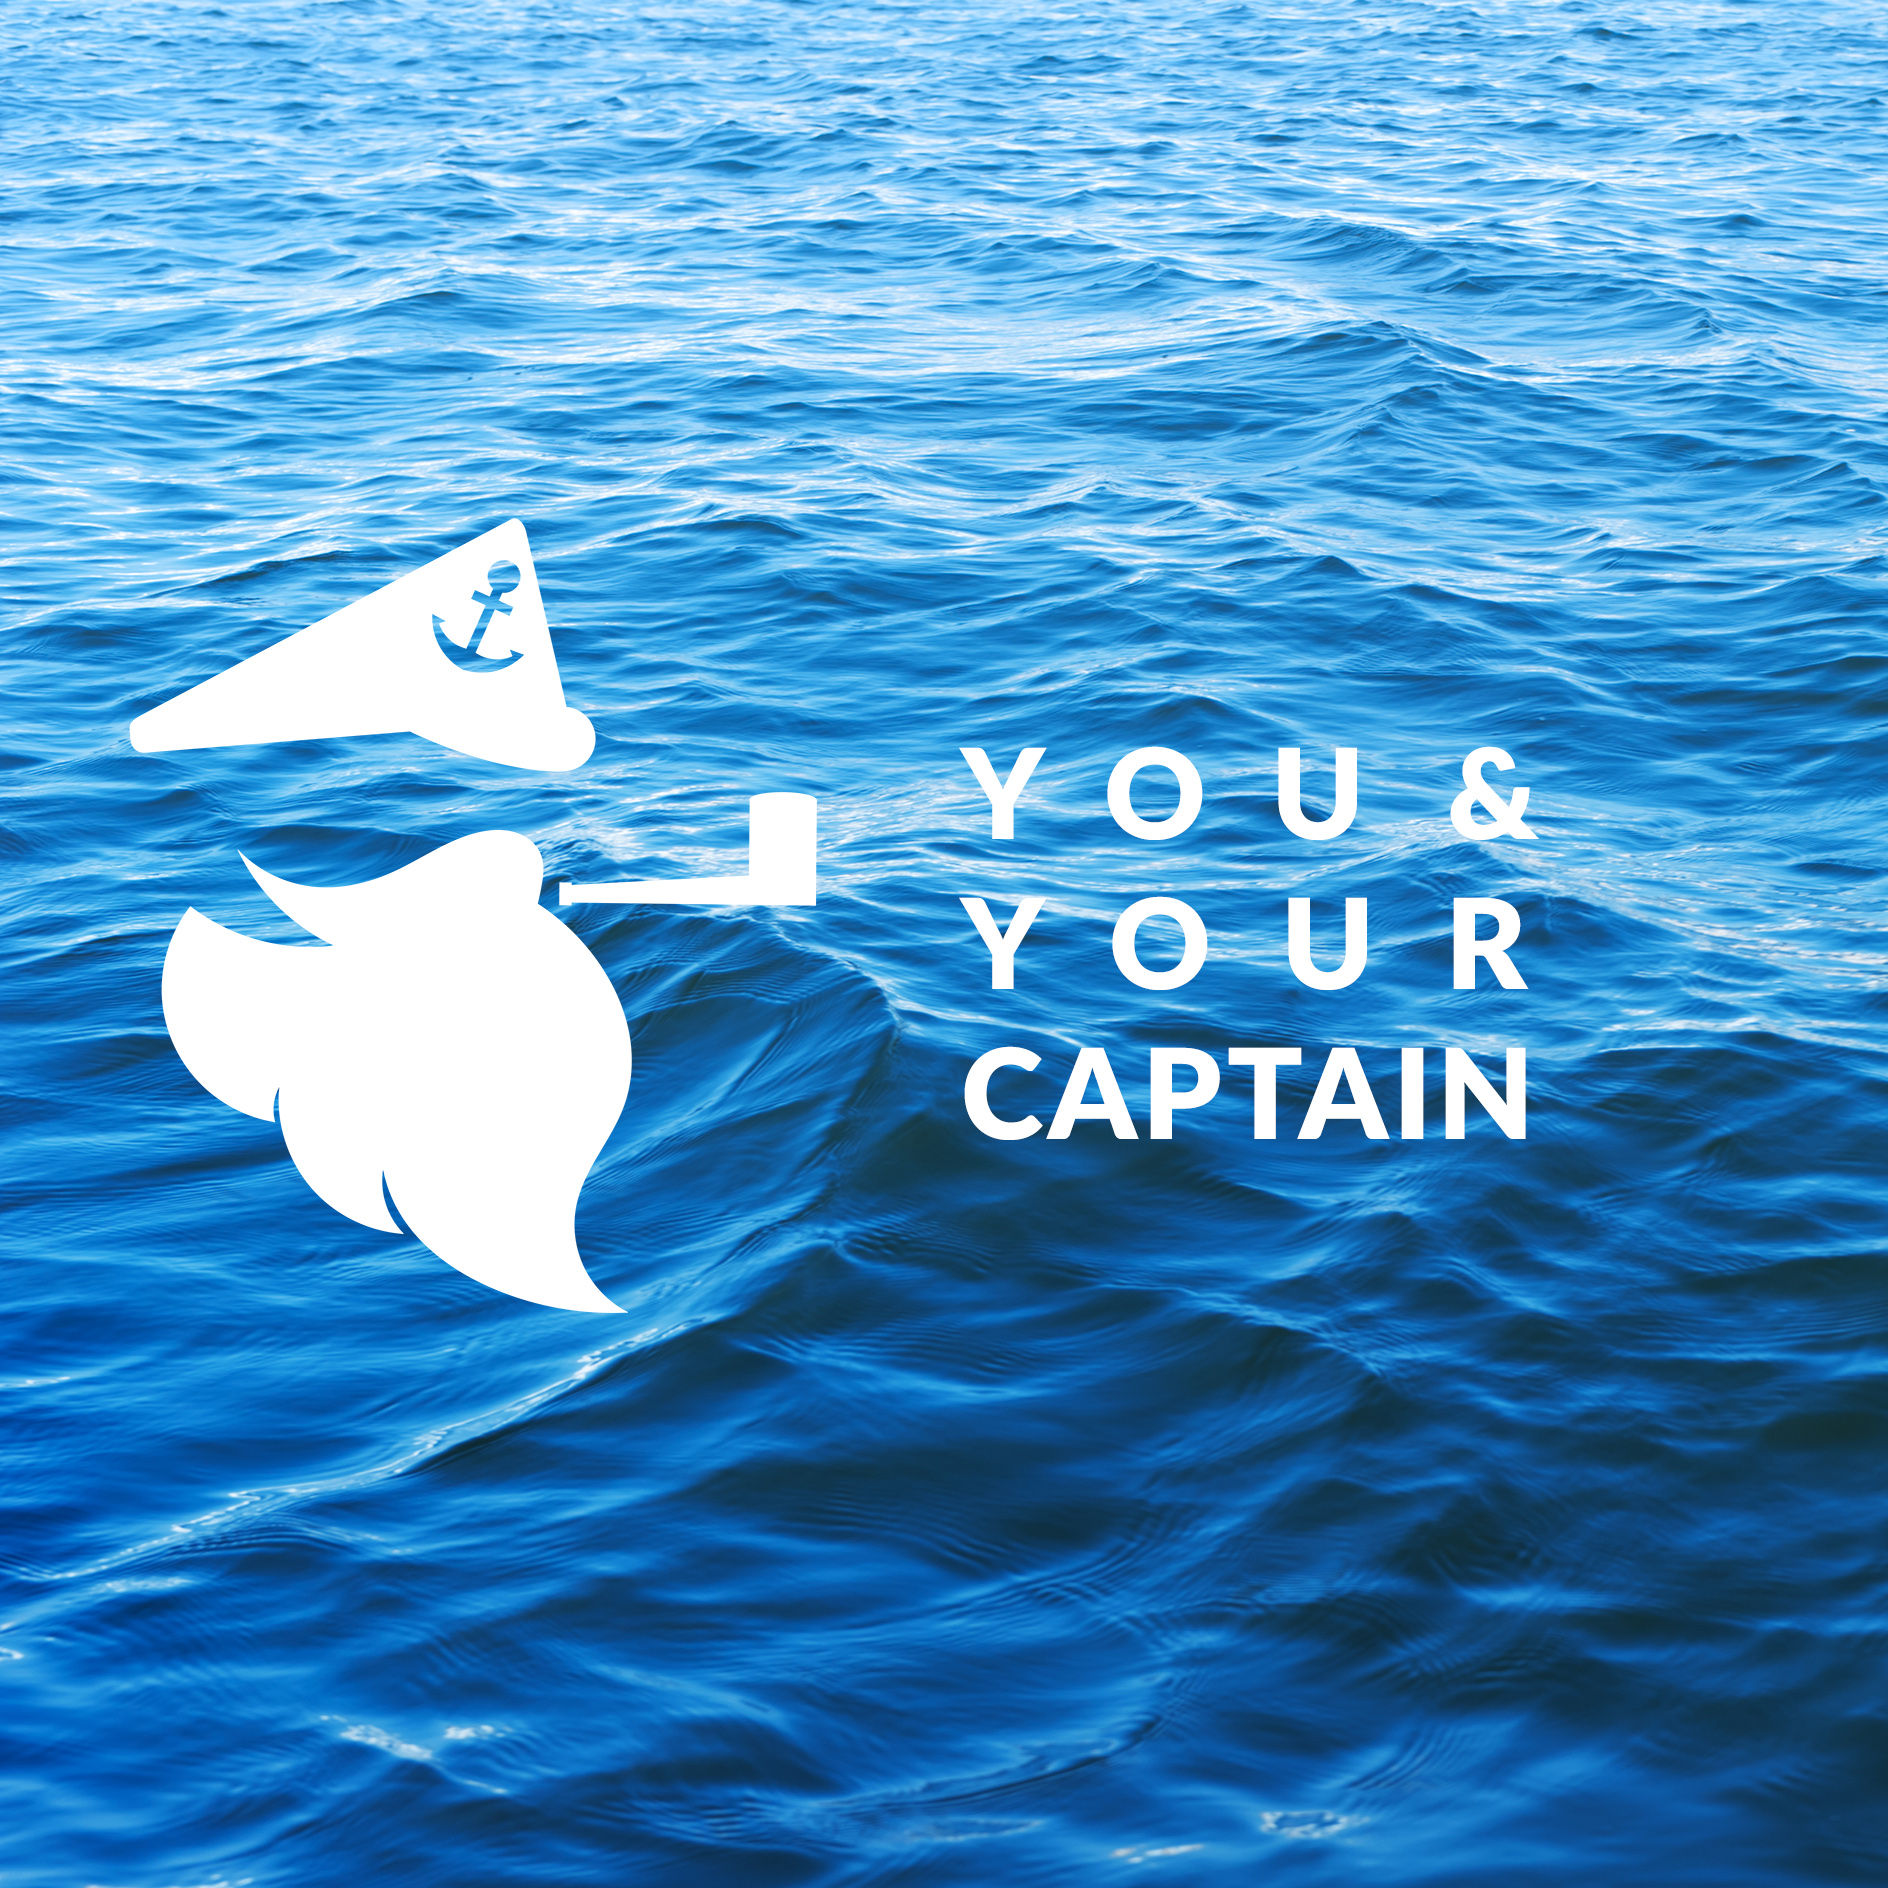 You & Your Captain